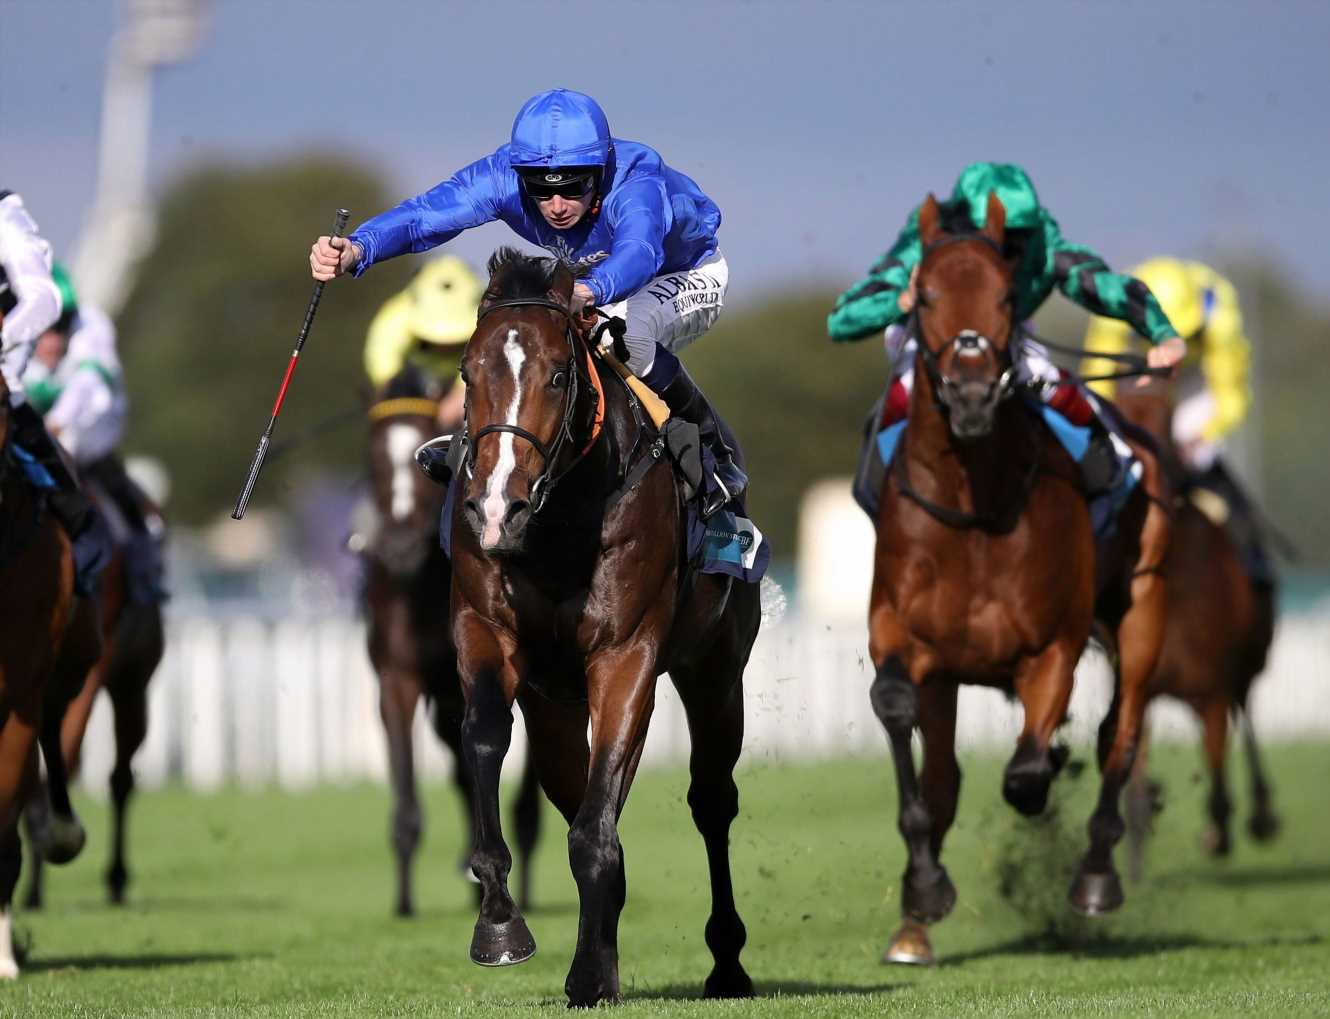 Newmarket Craven Meeting: Three stars that could emerge from the racing at Newmarket this week